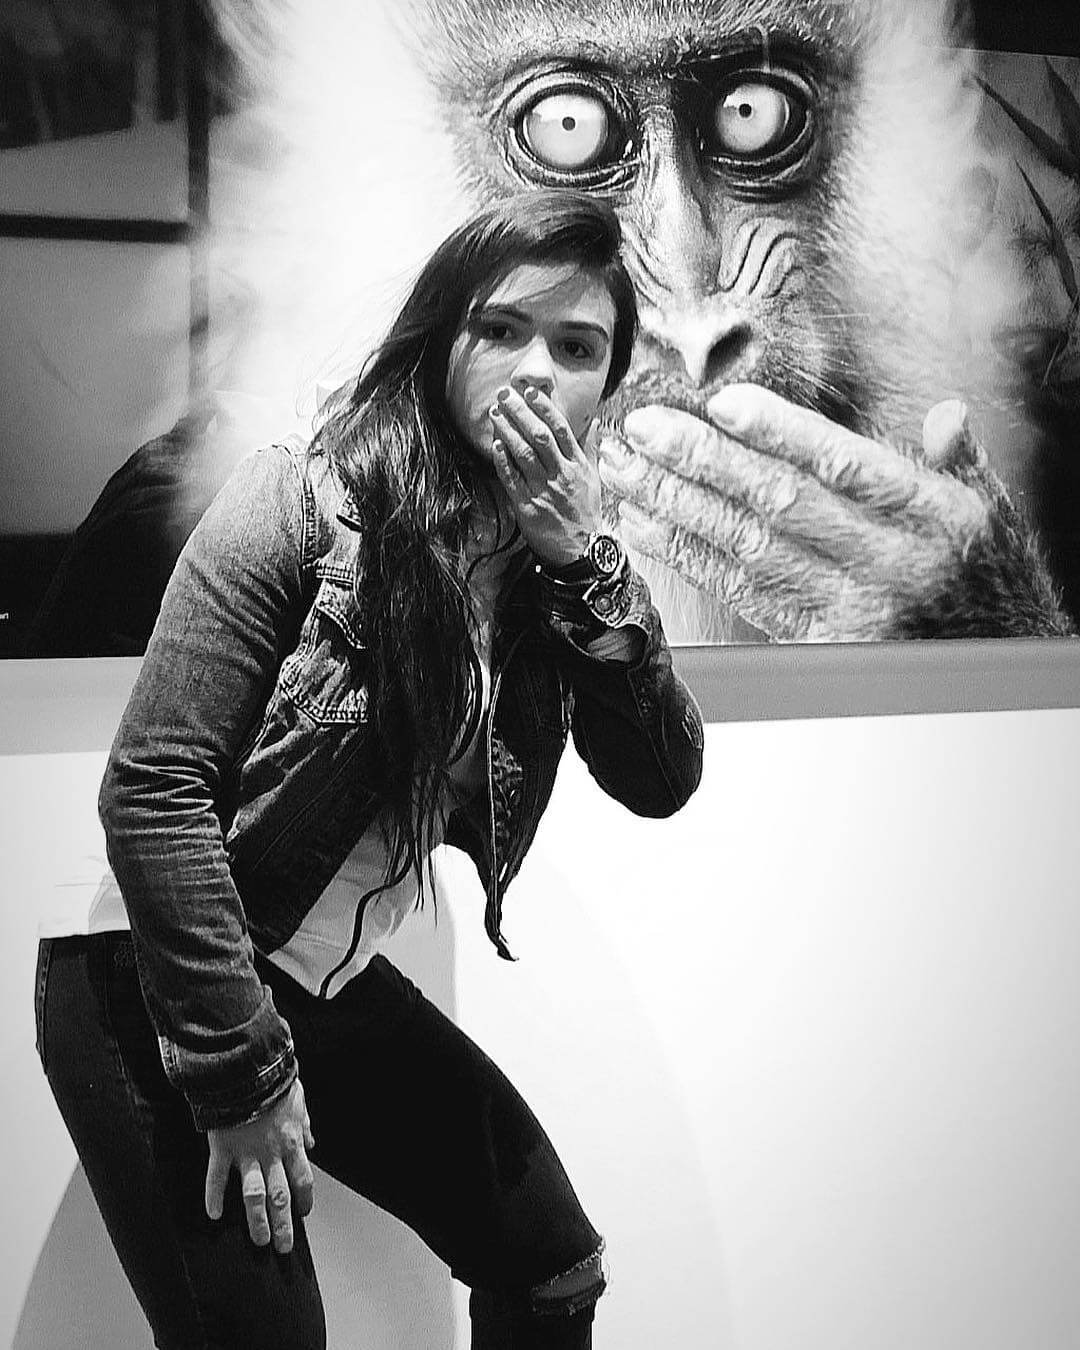 Claudia Gadelha awesome picture